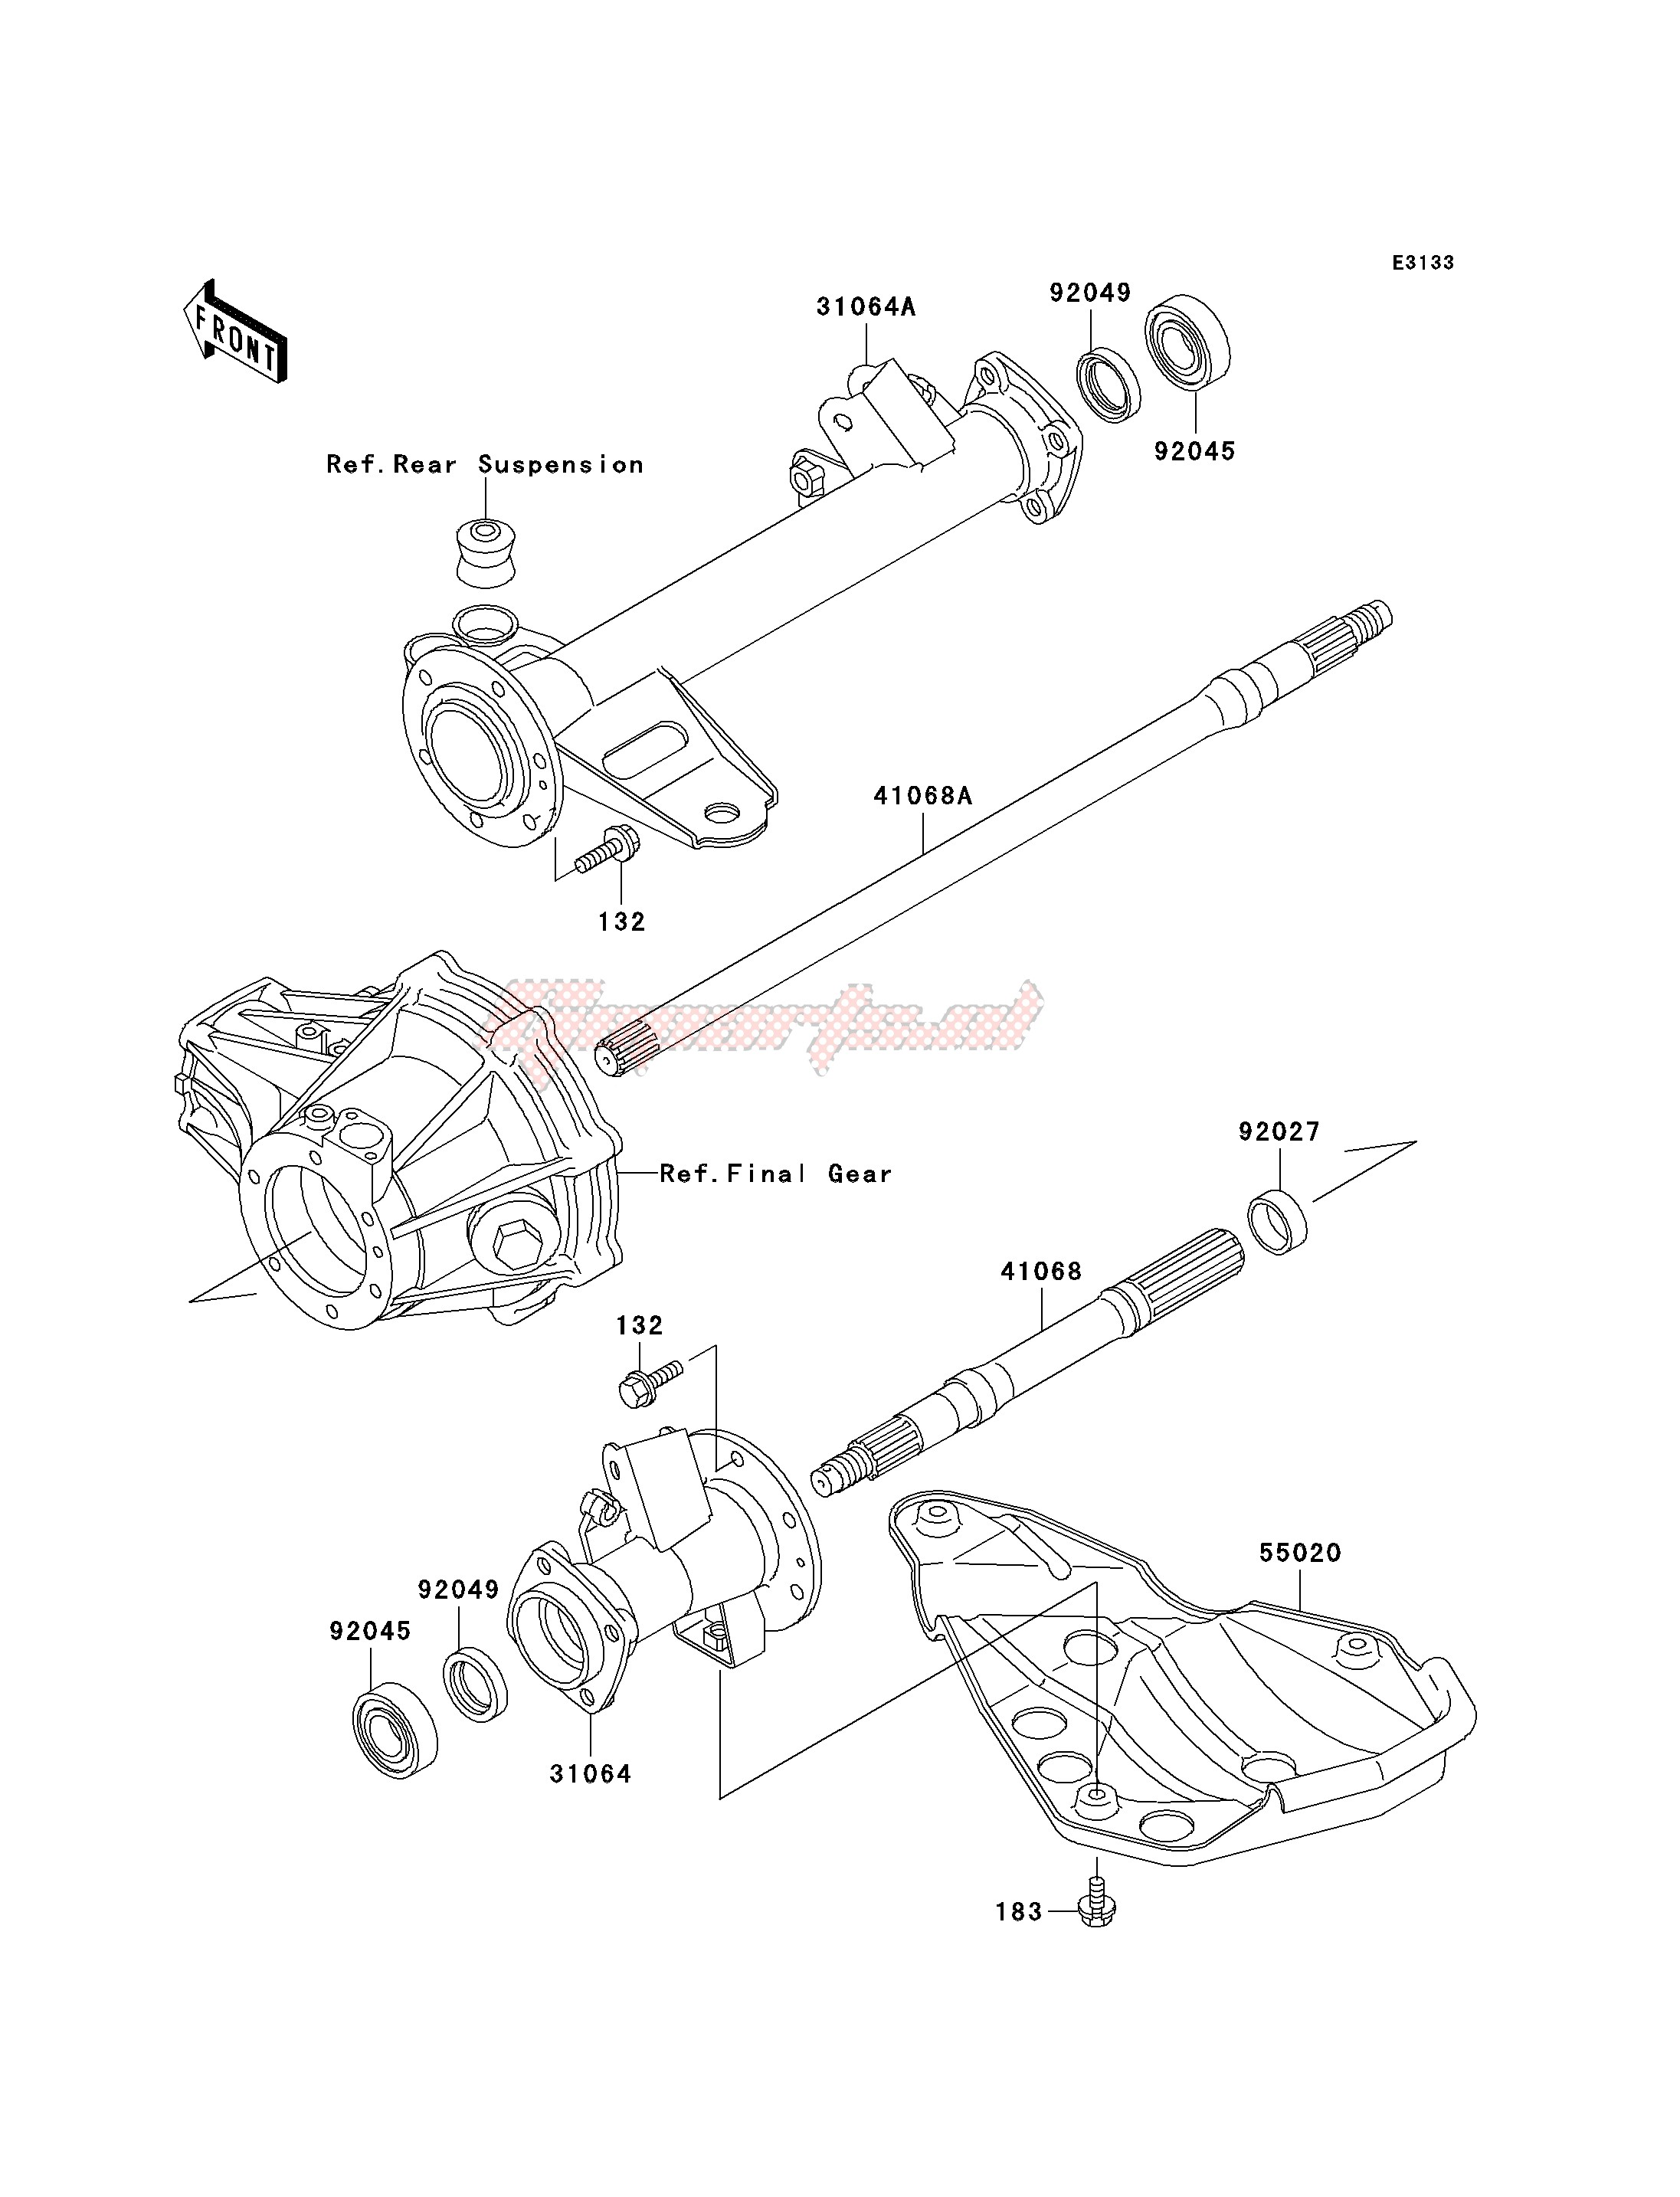 Frame-REAR AXLE